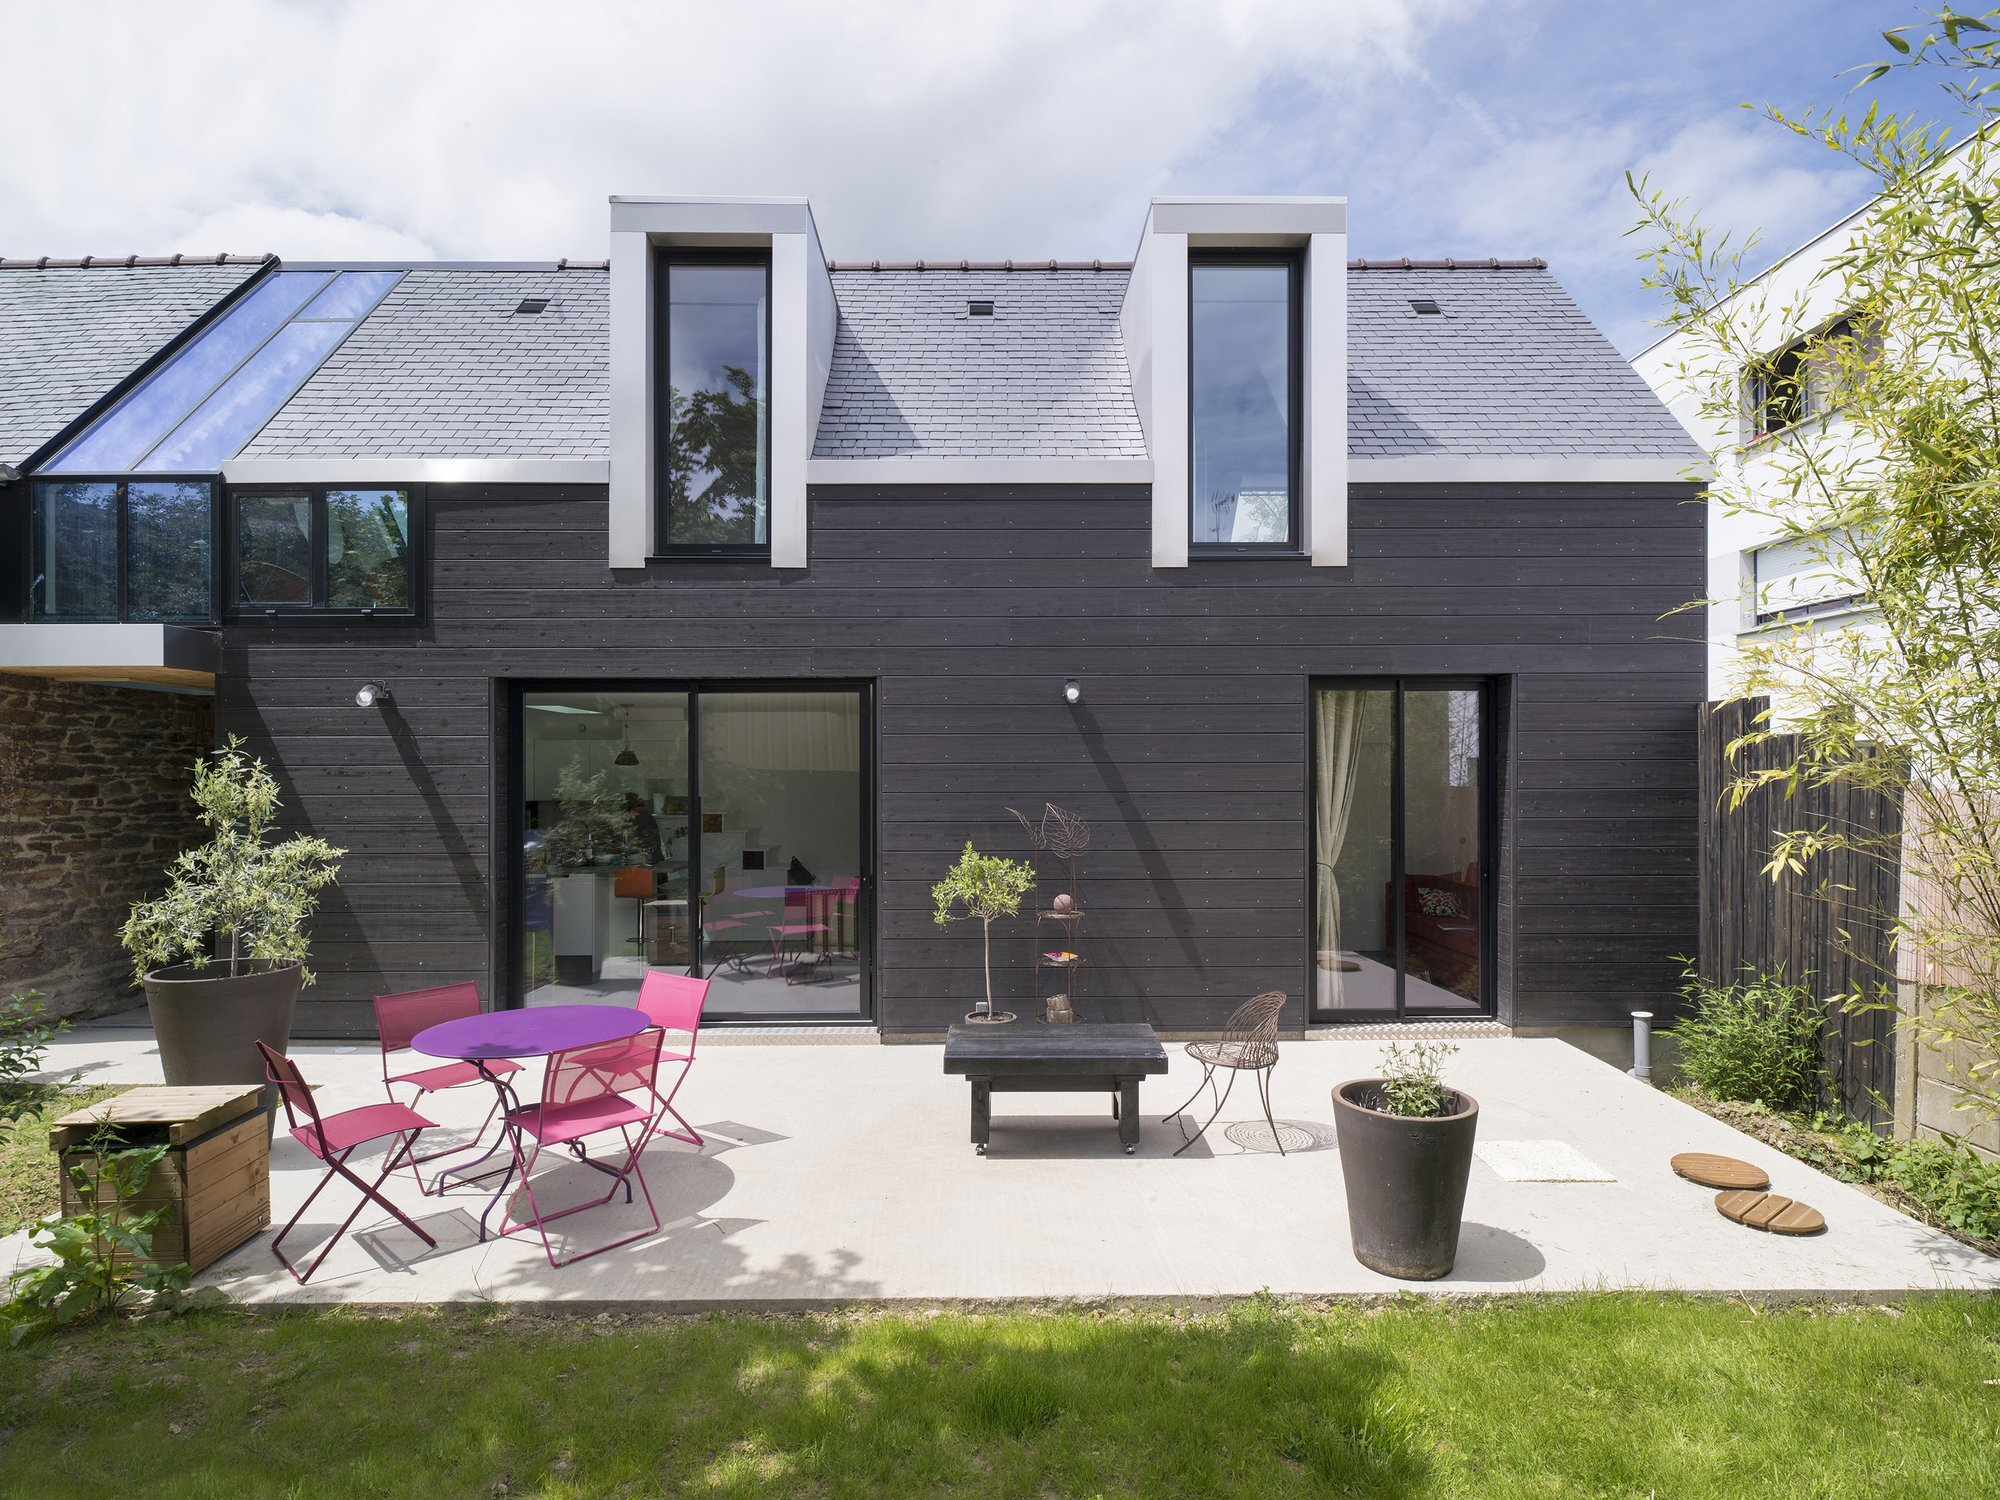 The House Between - Clément Bacle Architect - France - Rennes - Exterior - Humble Homes